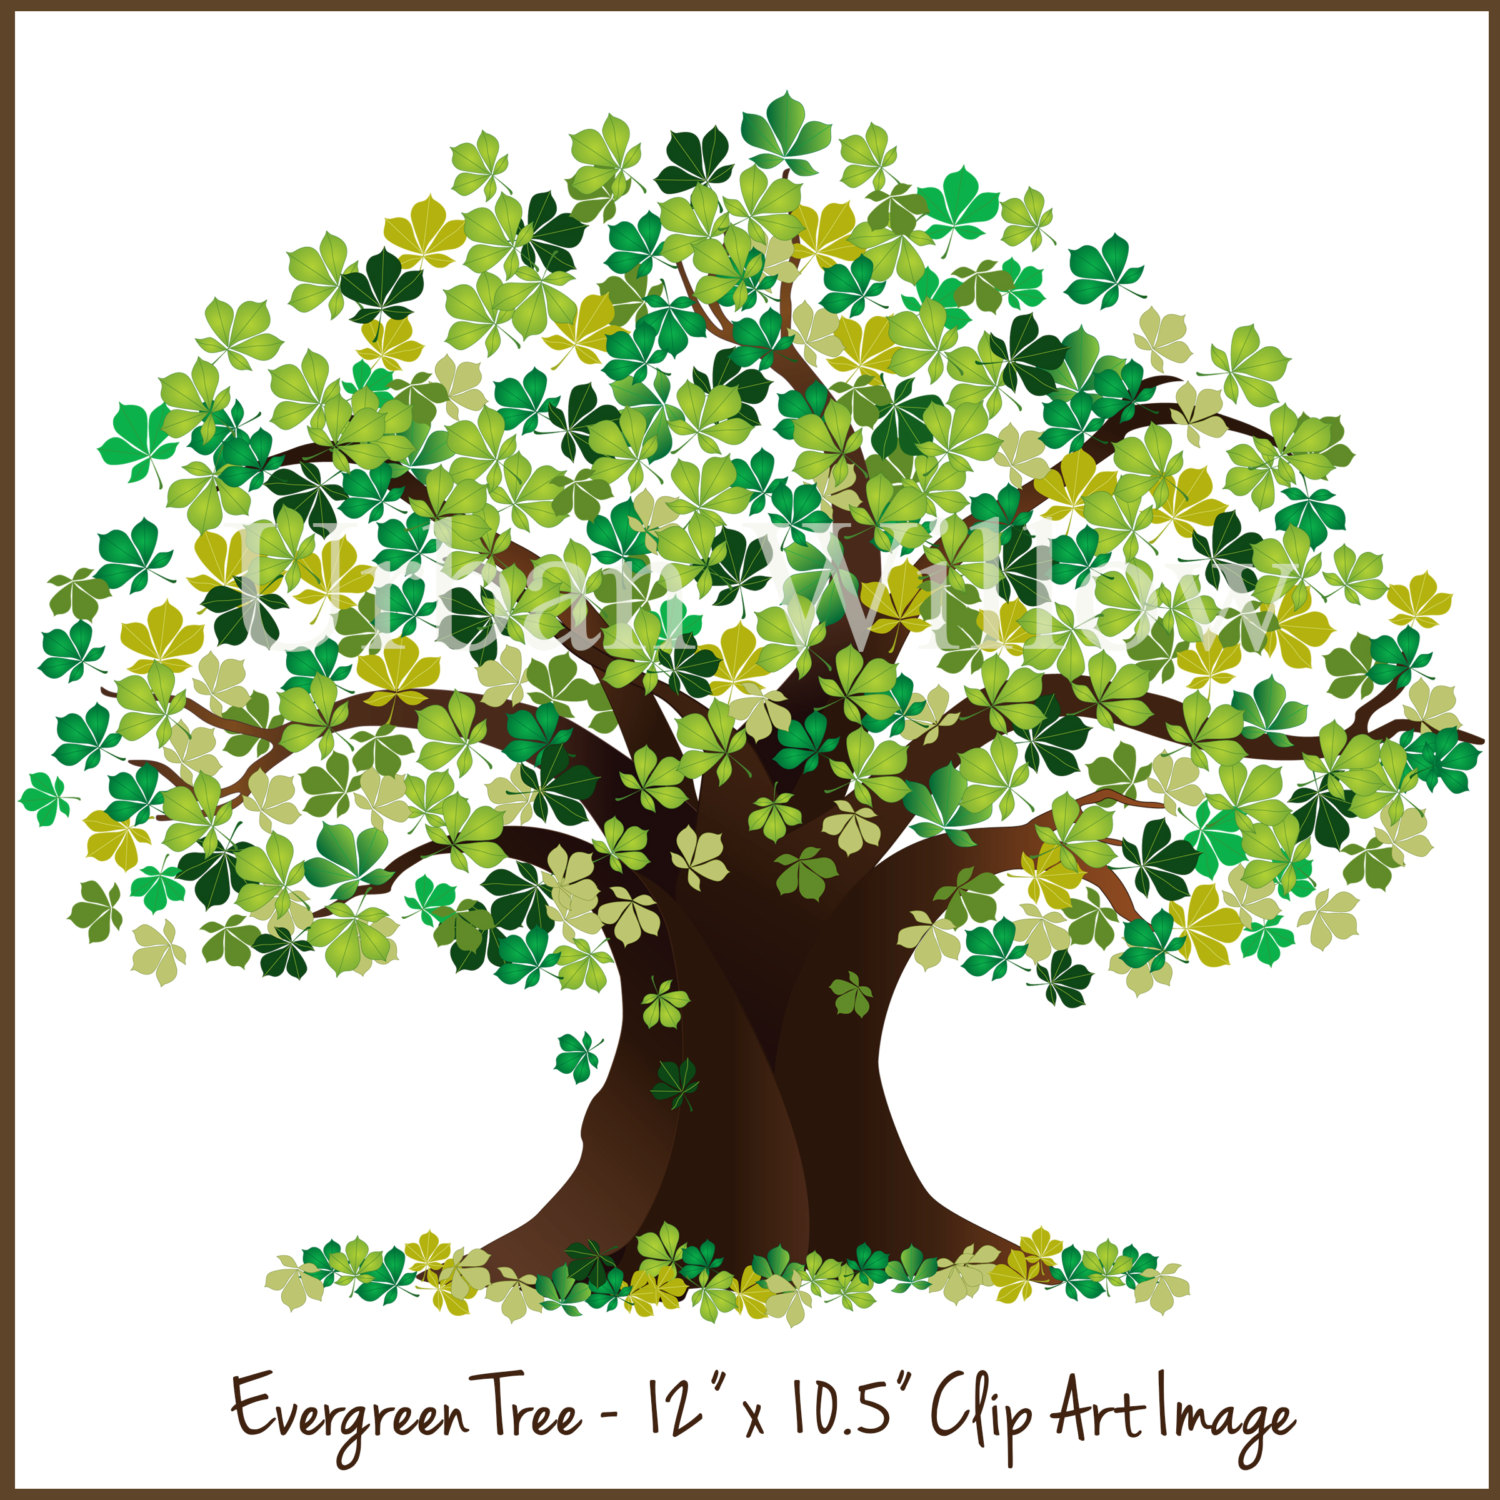 tree clipart oak clip graphic maple evergreen realistic trees cliparts chain photoshop drawing instant golden clipground painting arts 1500 craft